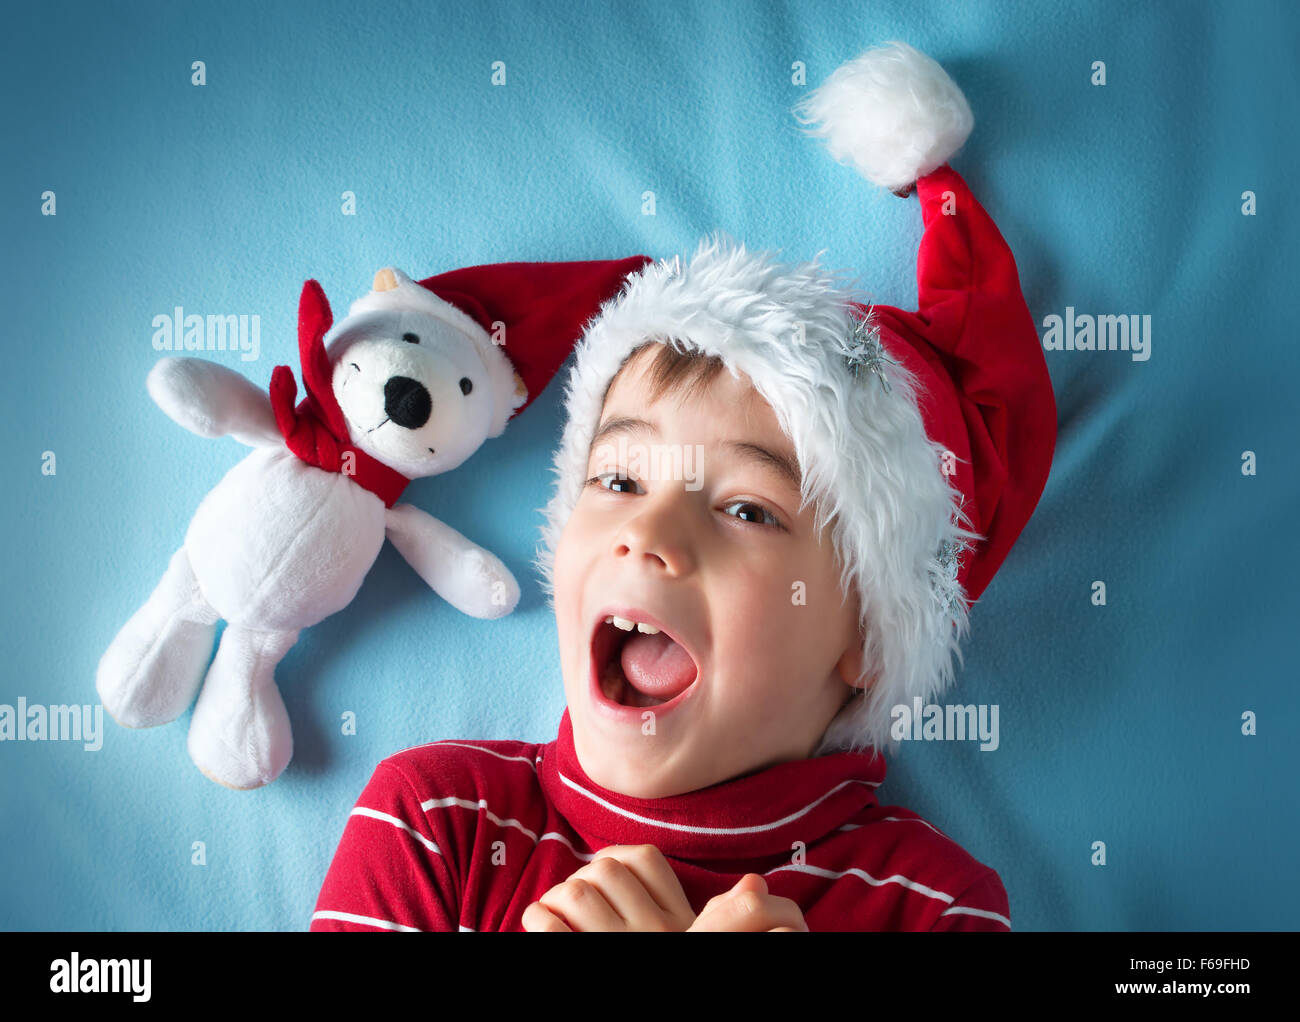 Happy boy in santa claus hat with a white bear on blue background - Stock Image